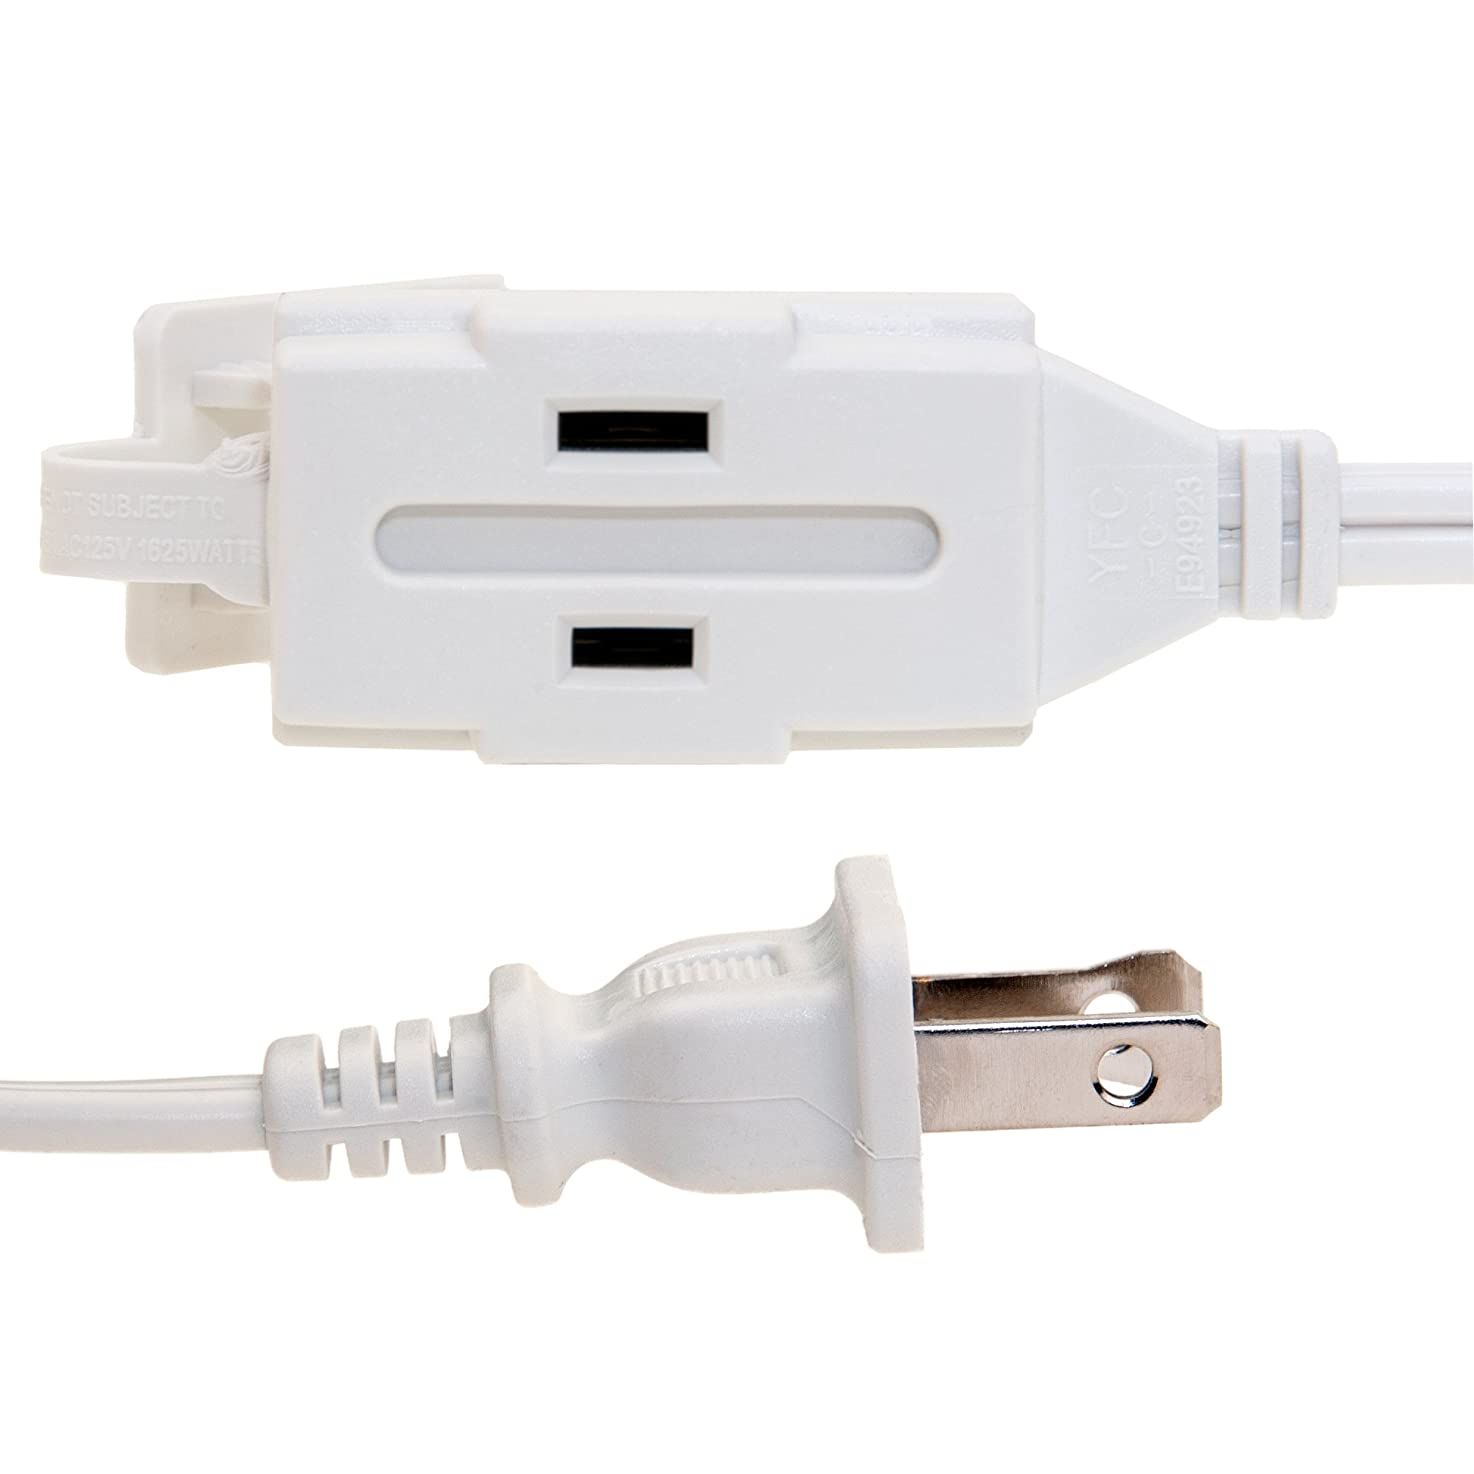 6ft 3 Outlet Power Extension Cord, UL/CSA White 16/2